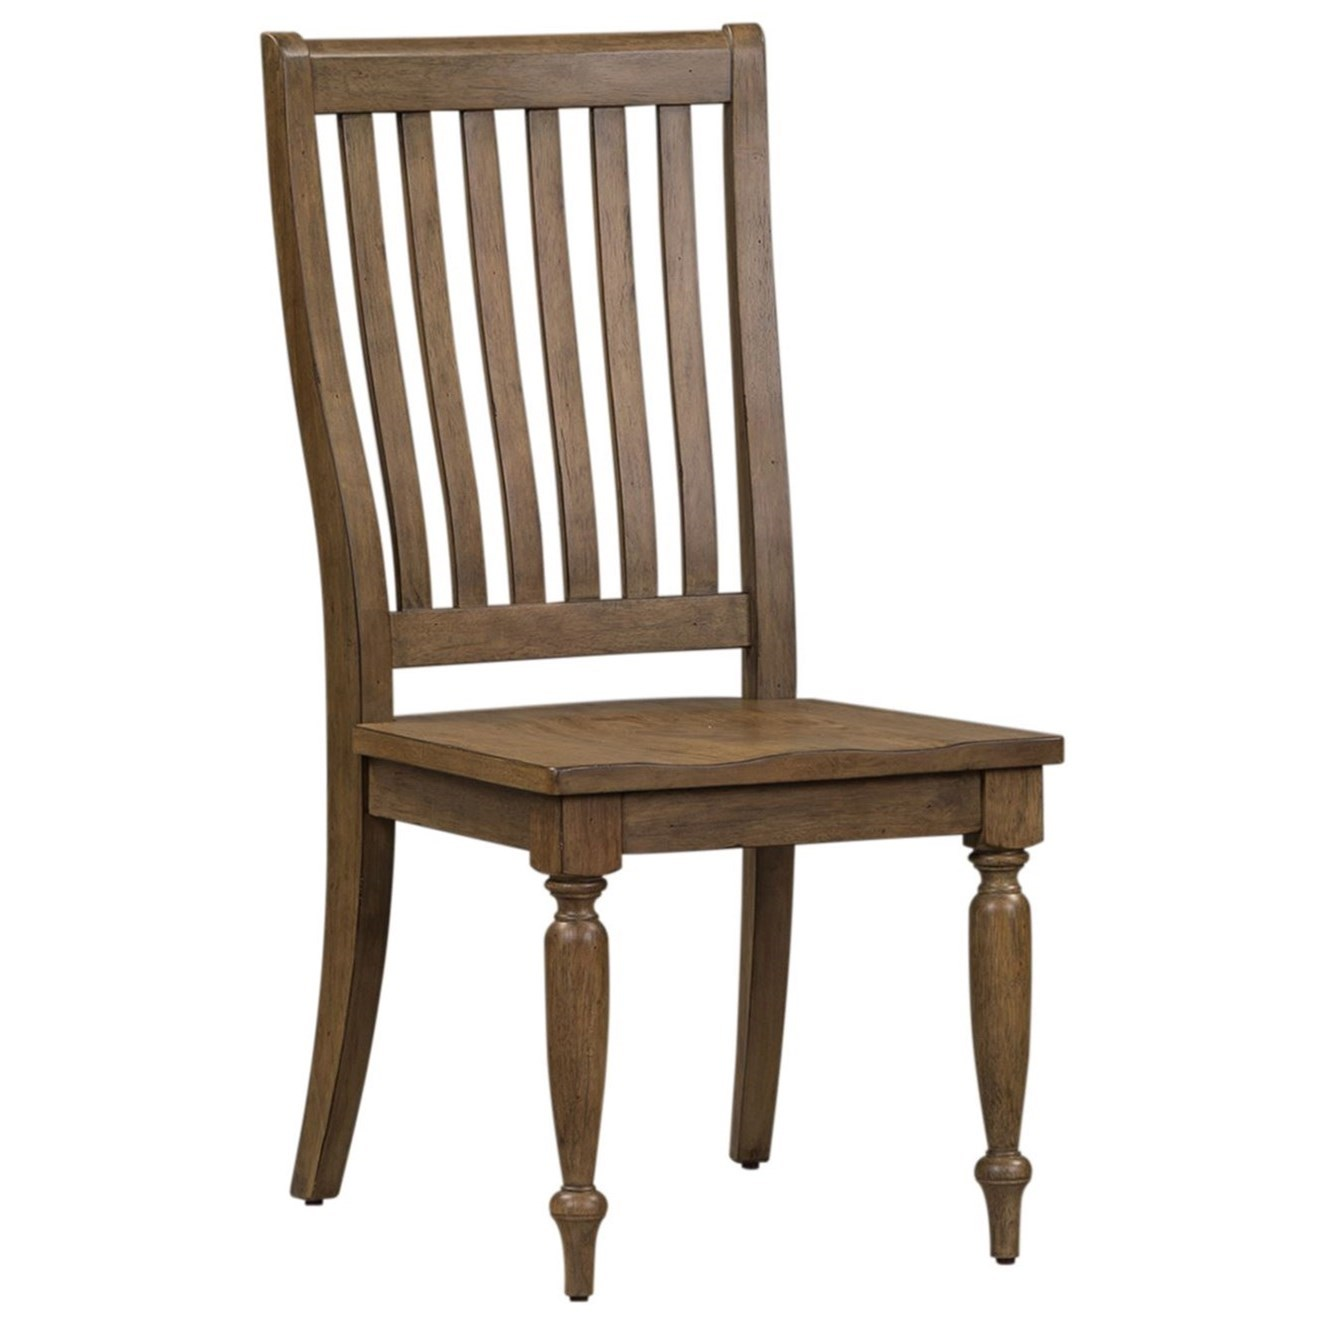 Harvest Home Slat Back Side Chair by Libby at Walker's Furniture